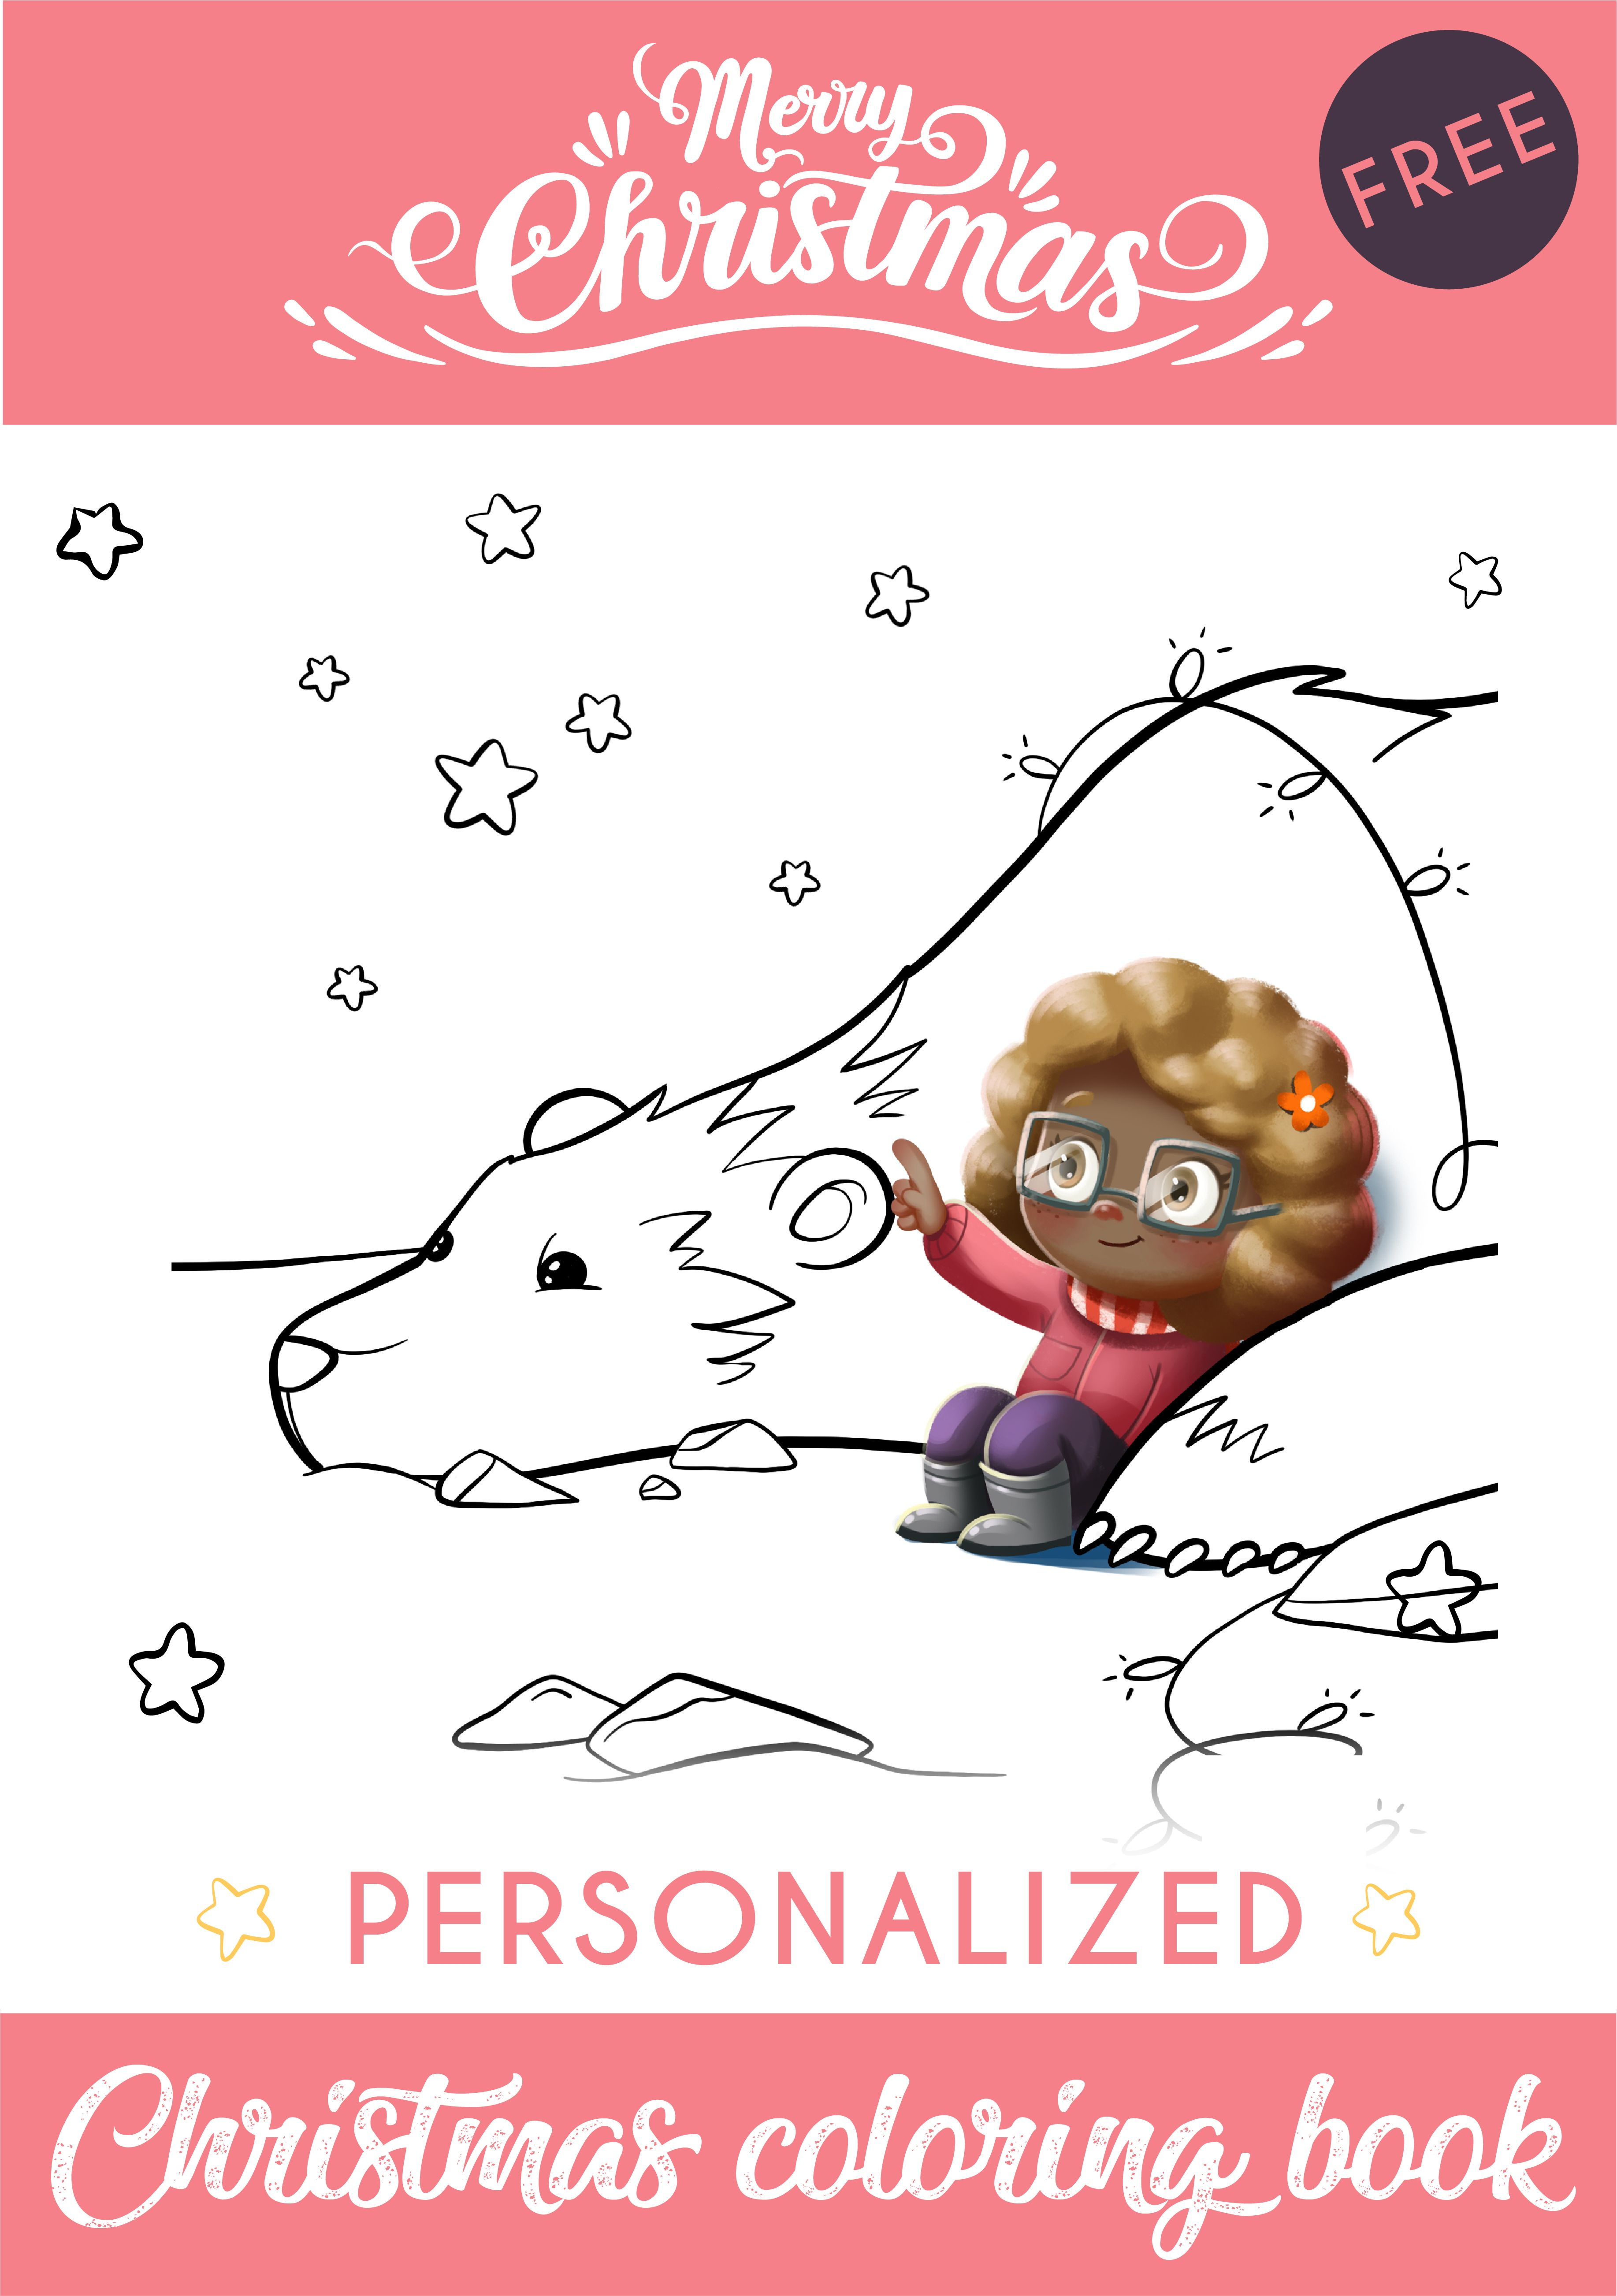 Free Personalized Christmas Coloring Book Christmas Coloring Books Coloring Books Personalized Coloring Book